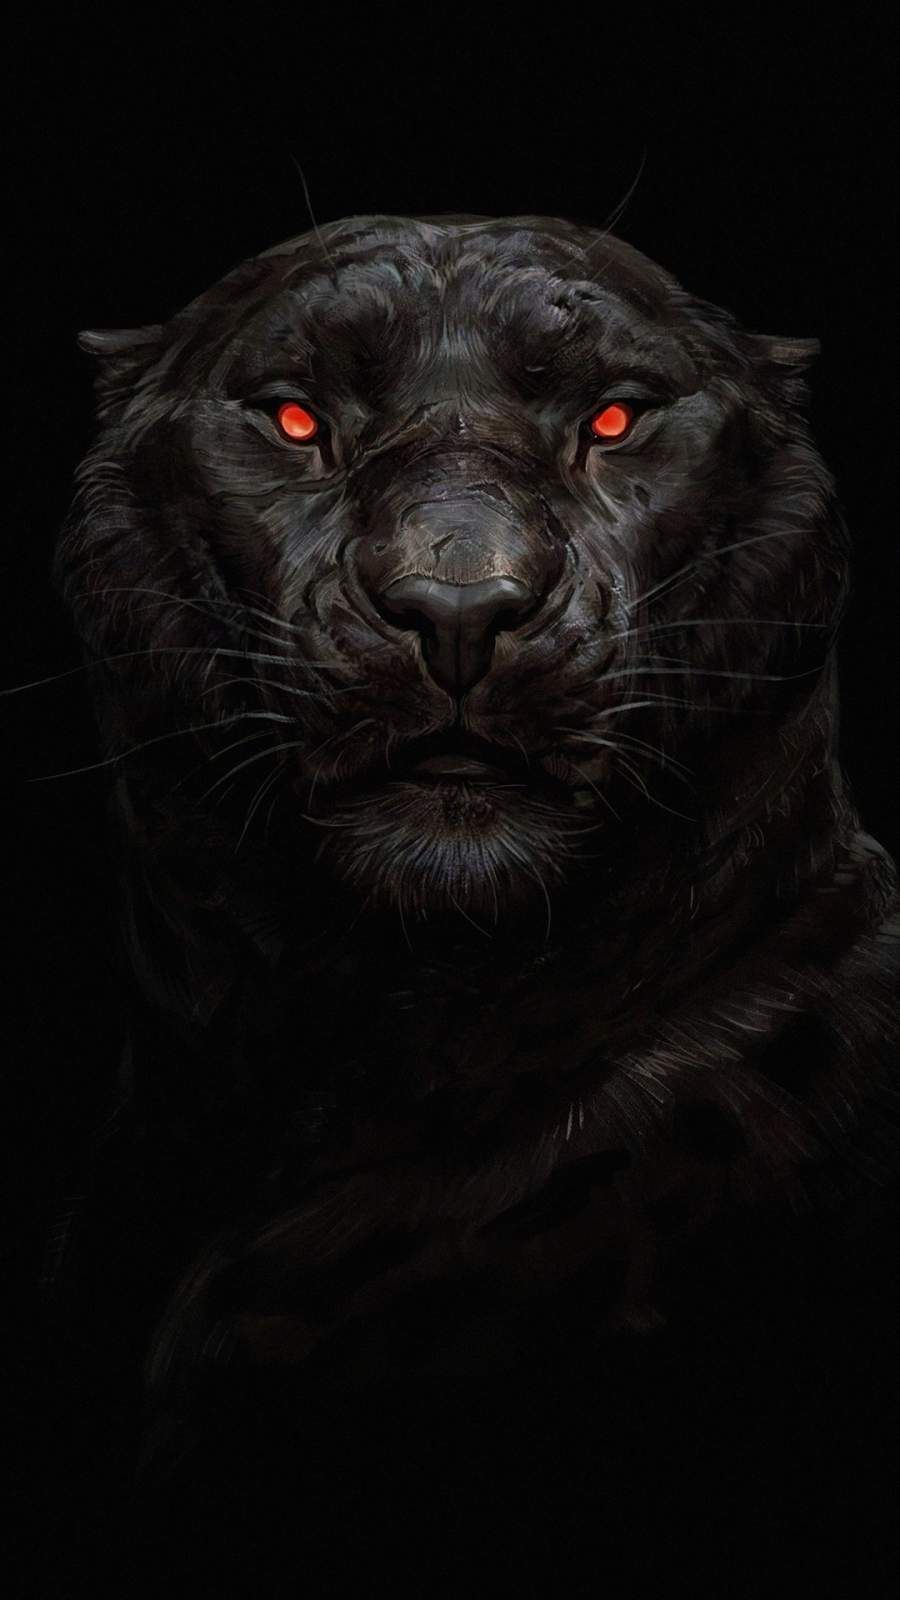 Black Panther Glowing Eye Iphone Wallpaper Jaguar Animal Black Panther Hd Wallpaper Animal Wallpaper